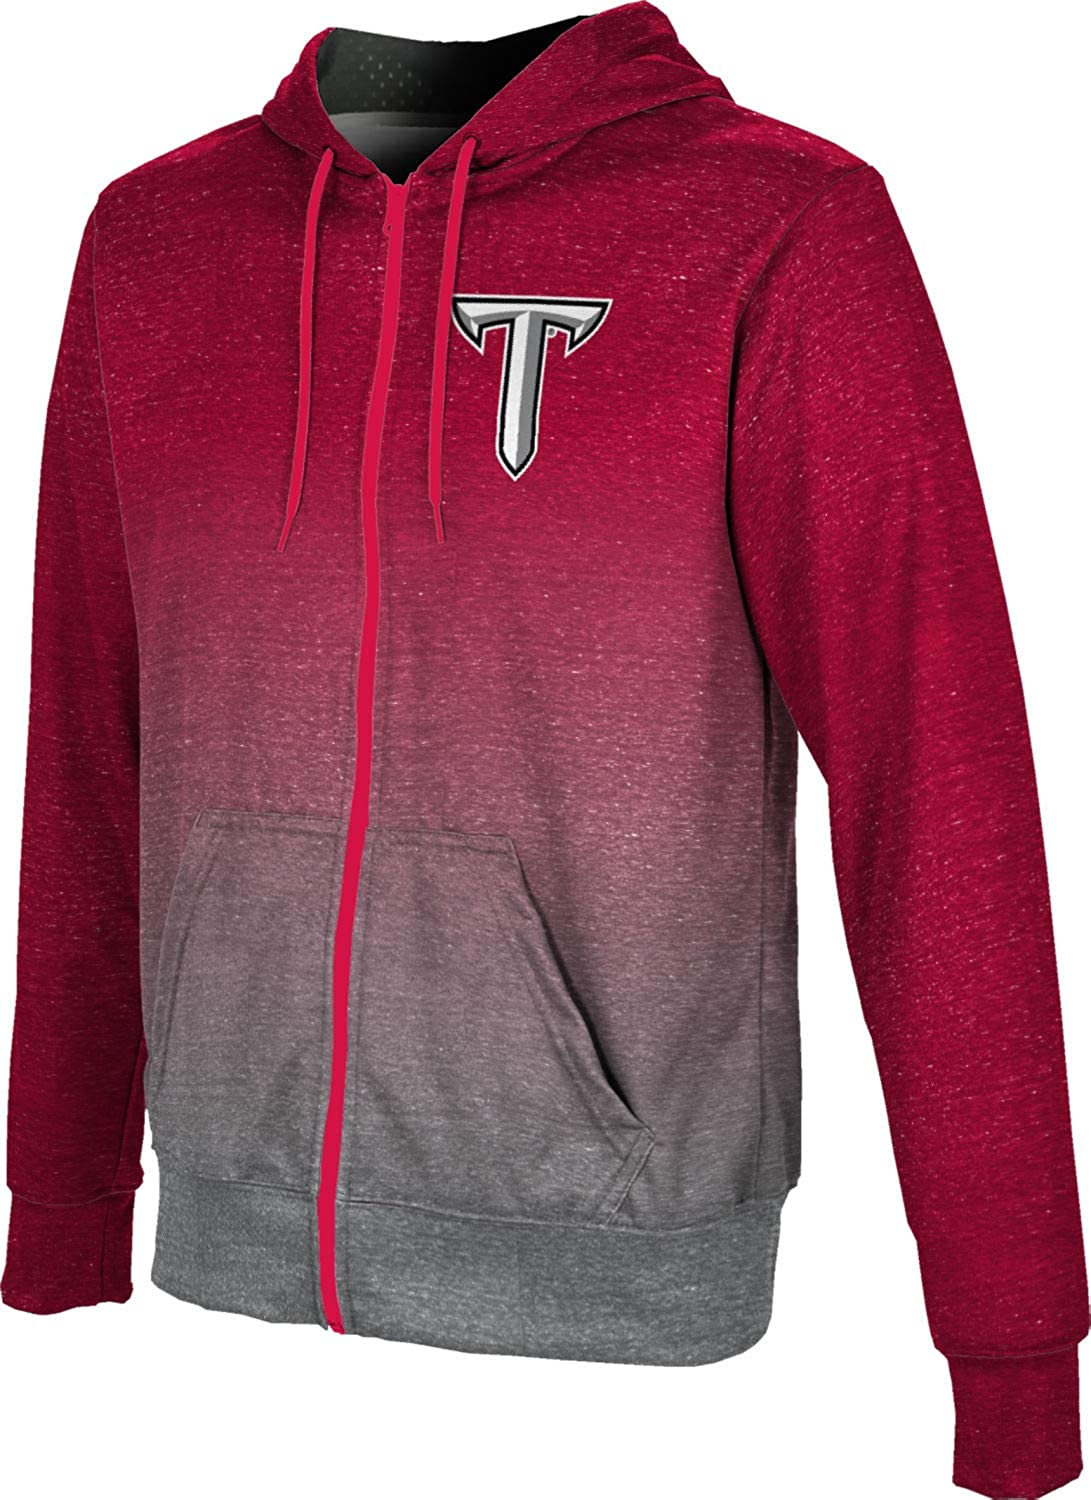 ProSphere Troy University Boys' Zipper Swe Spirit shopping Hoodie Limited time for free shipping School